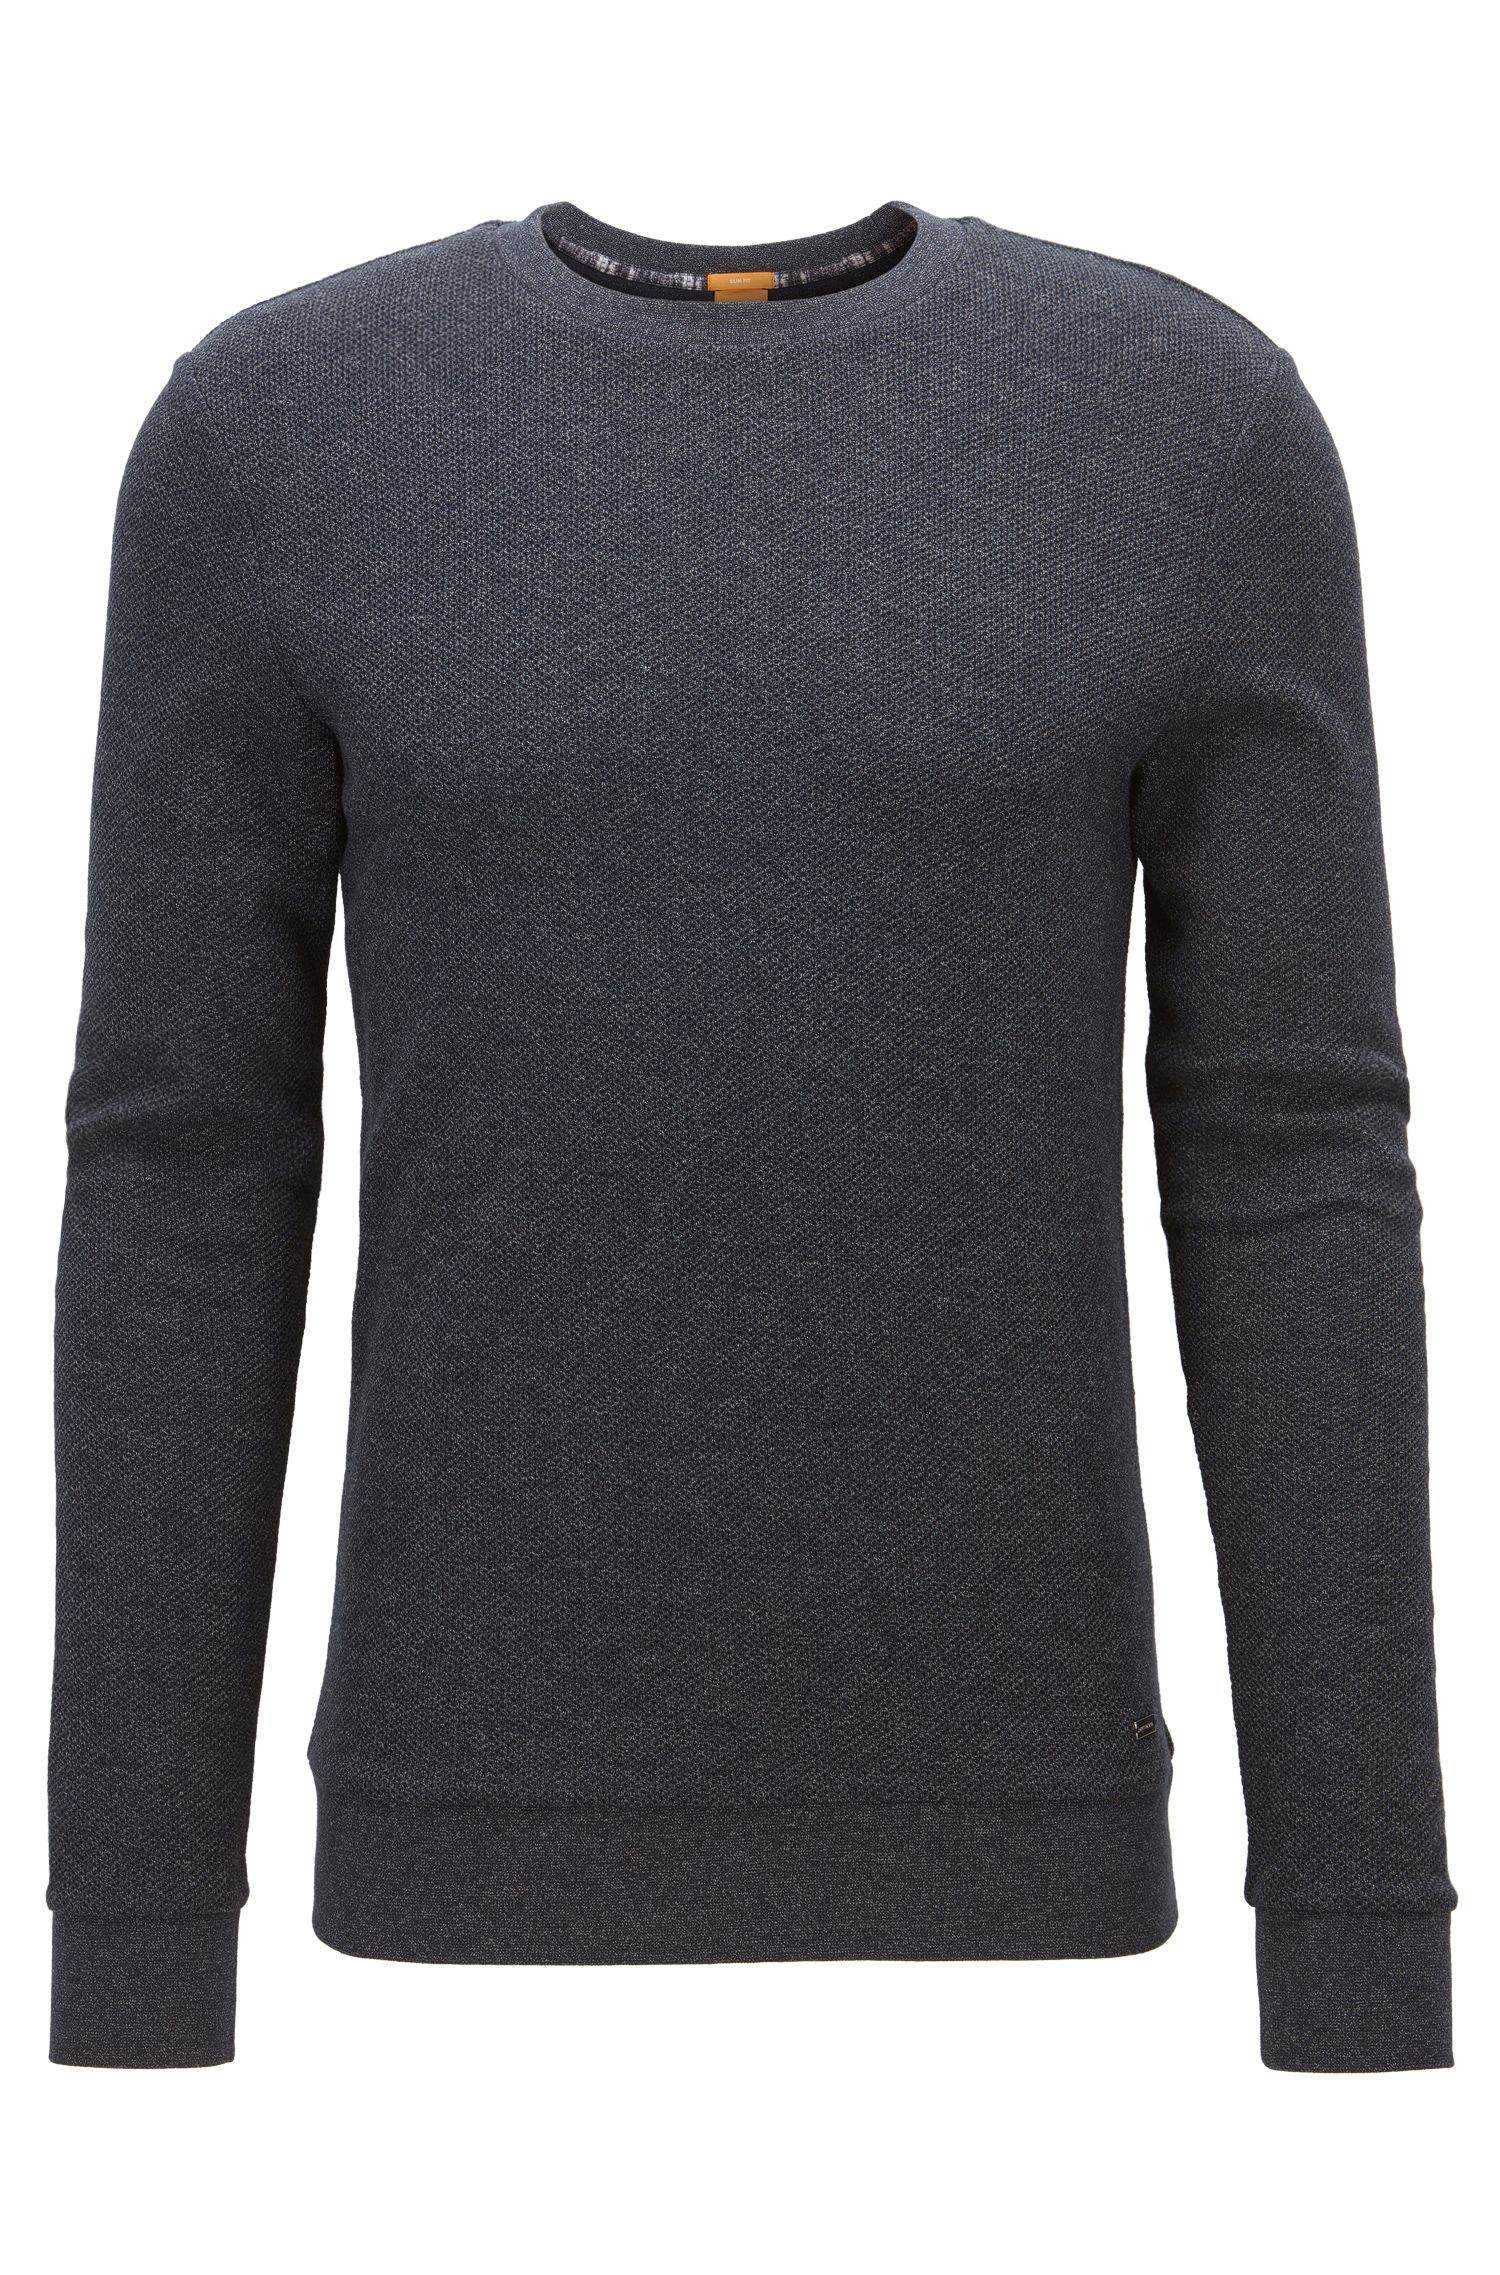 Waffle-structure sweater in heathered cotton